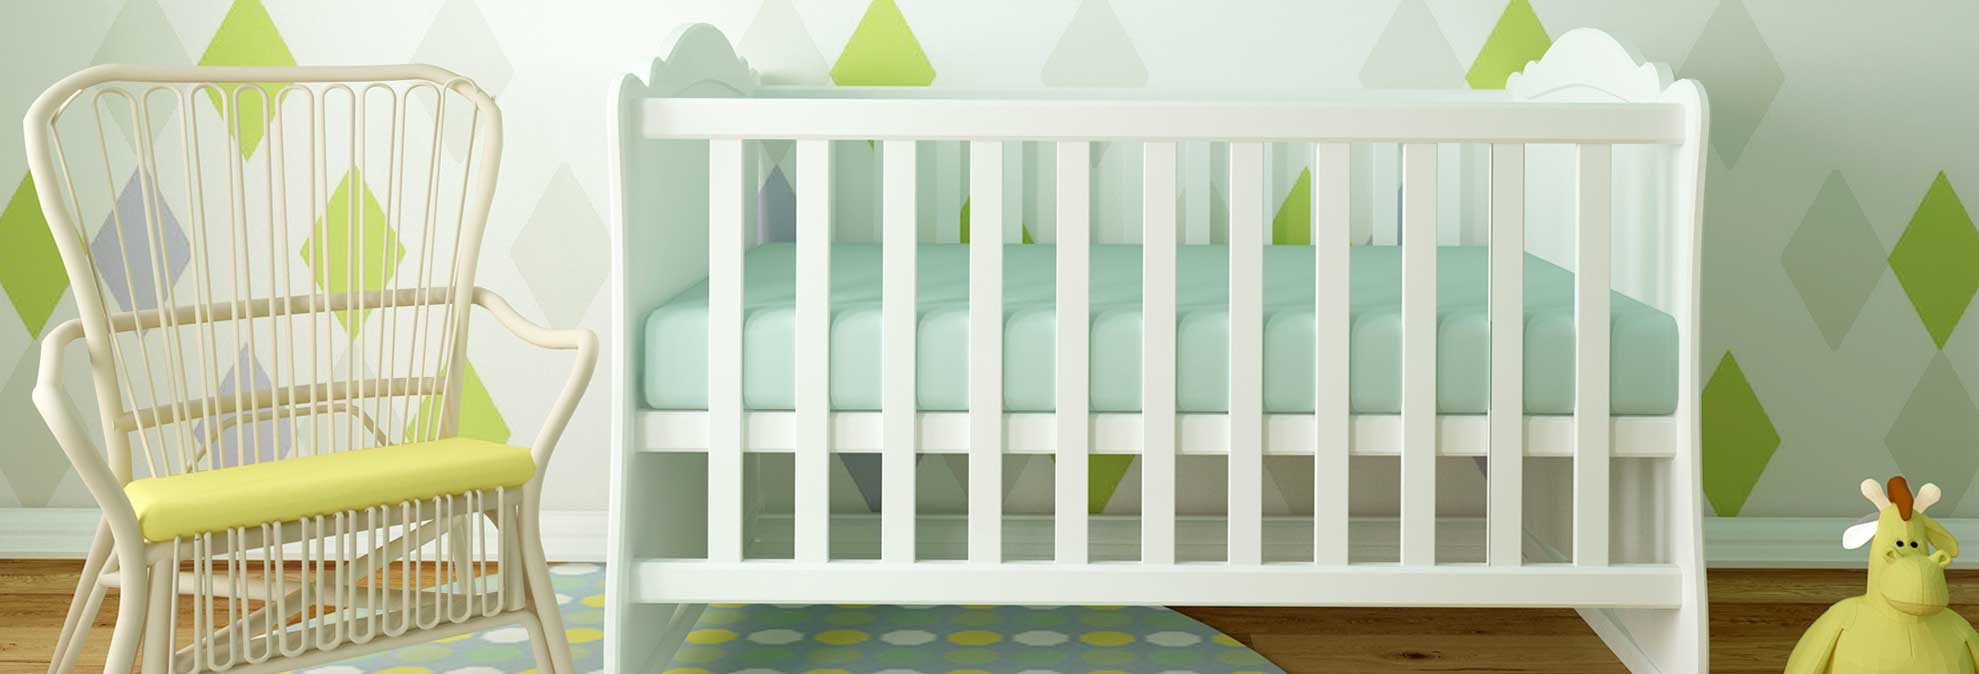 Choosing a good mattress for a double bed and a baby cot